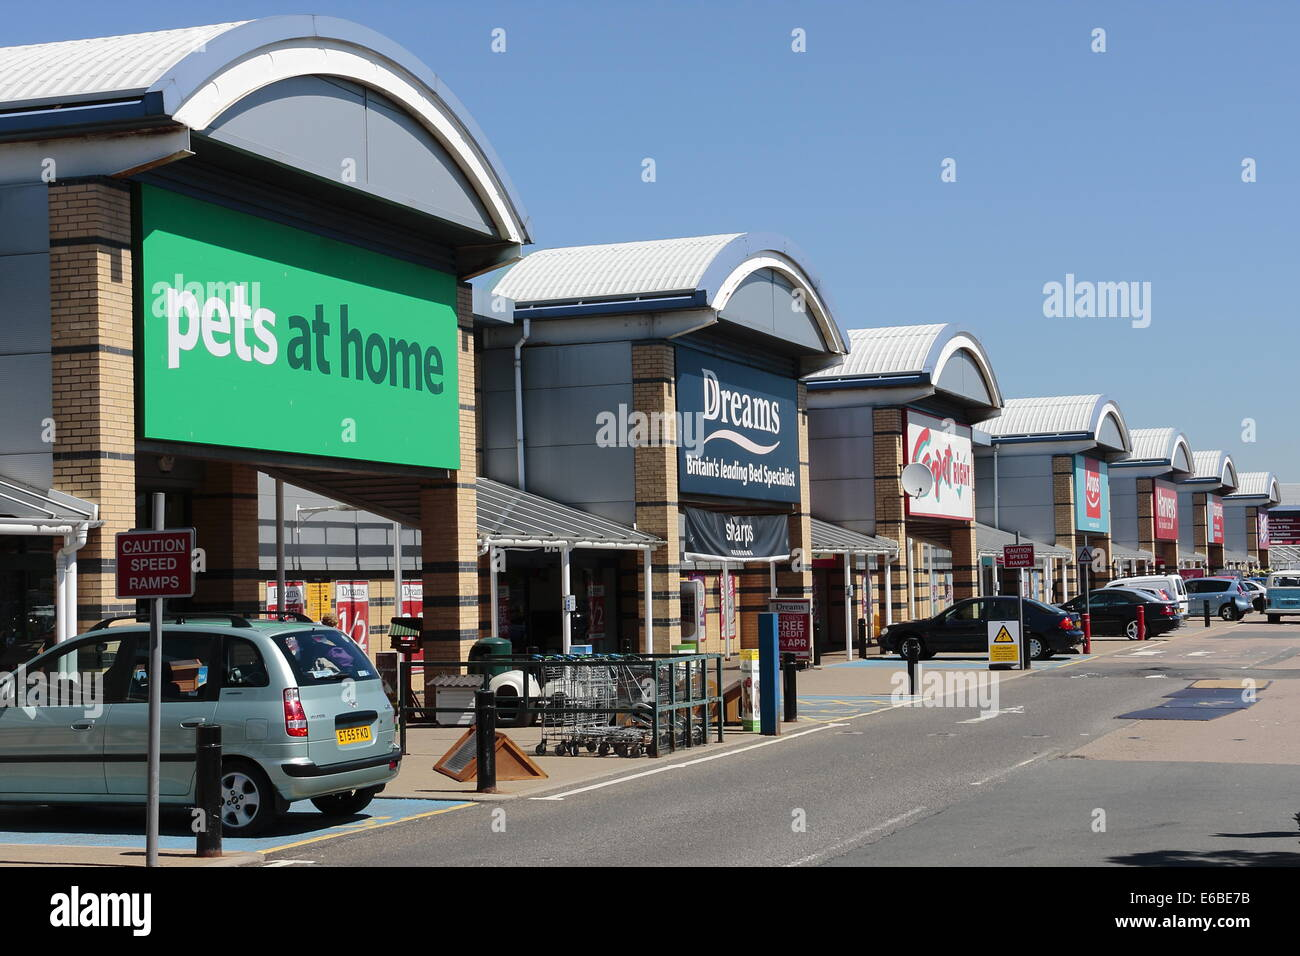 The Airport retail park, at the entrance to London Southend airport. - Stock Image